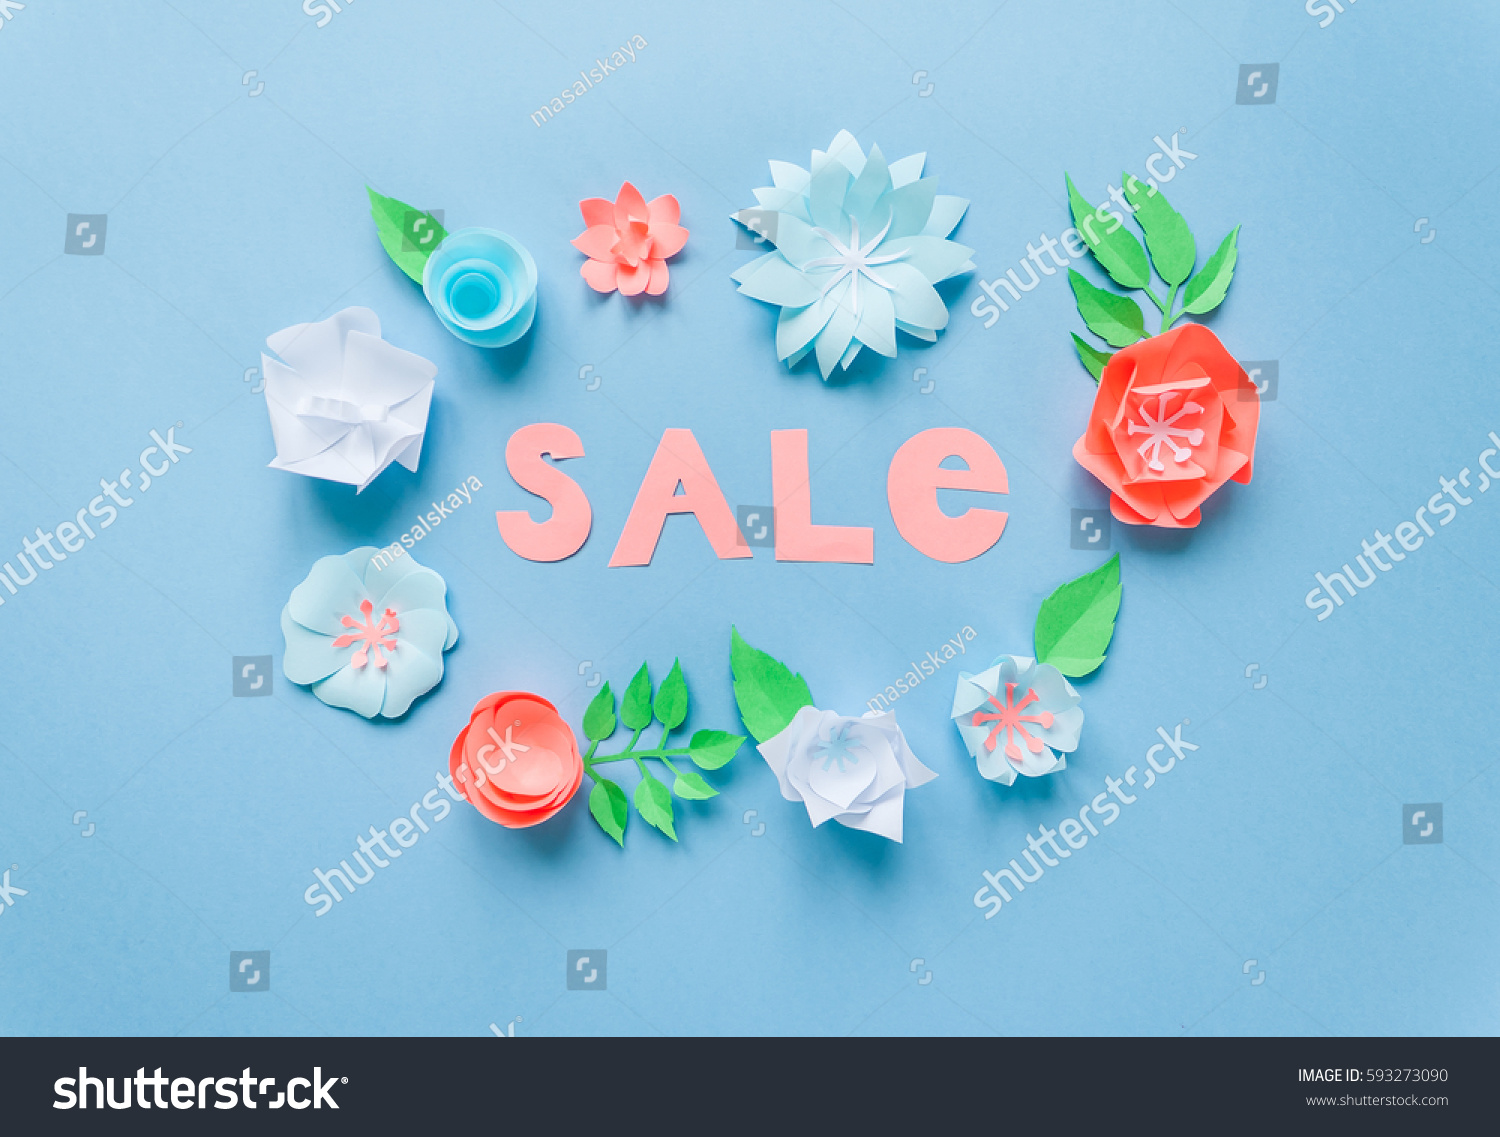 Sale frame color paper flowers on stock photo edit now 593273090 sale frame with color paper flowers on the blue background flat lay nature concept mightylinksfo